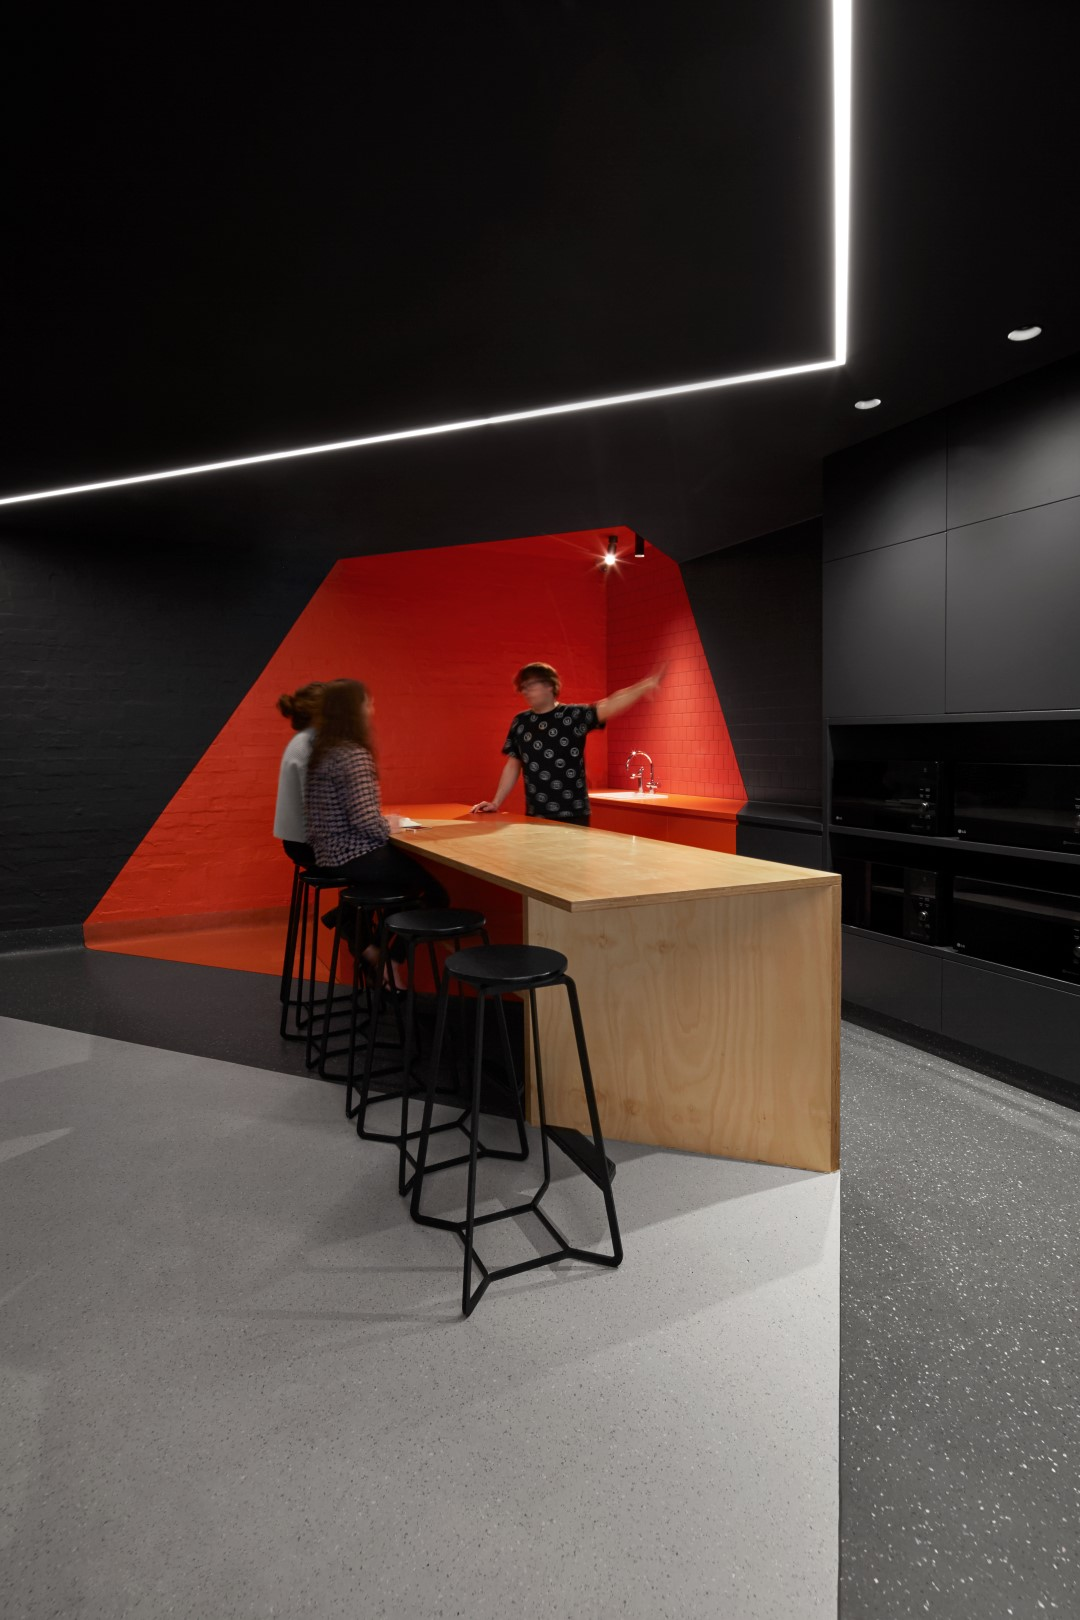 HINGE_RMIT Student Zone_Internal_Kitchenette_Large.jpg